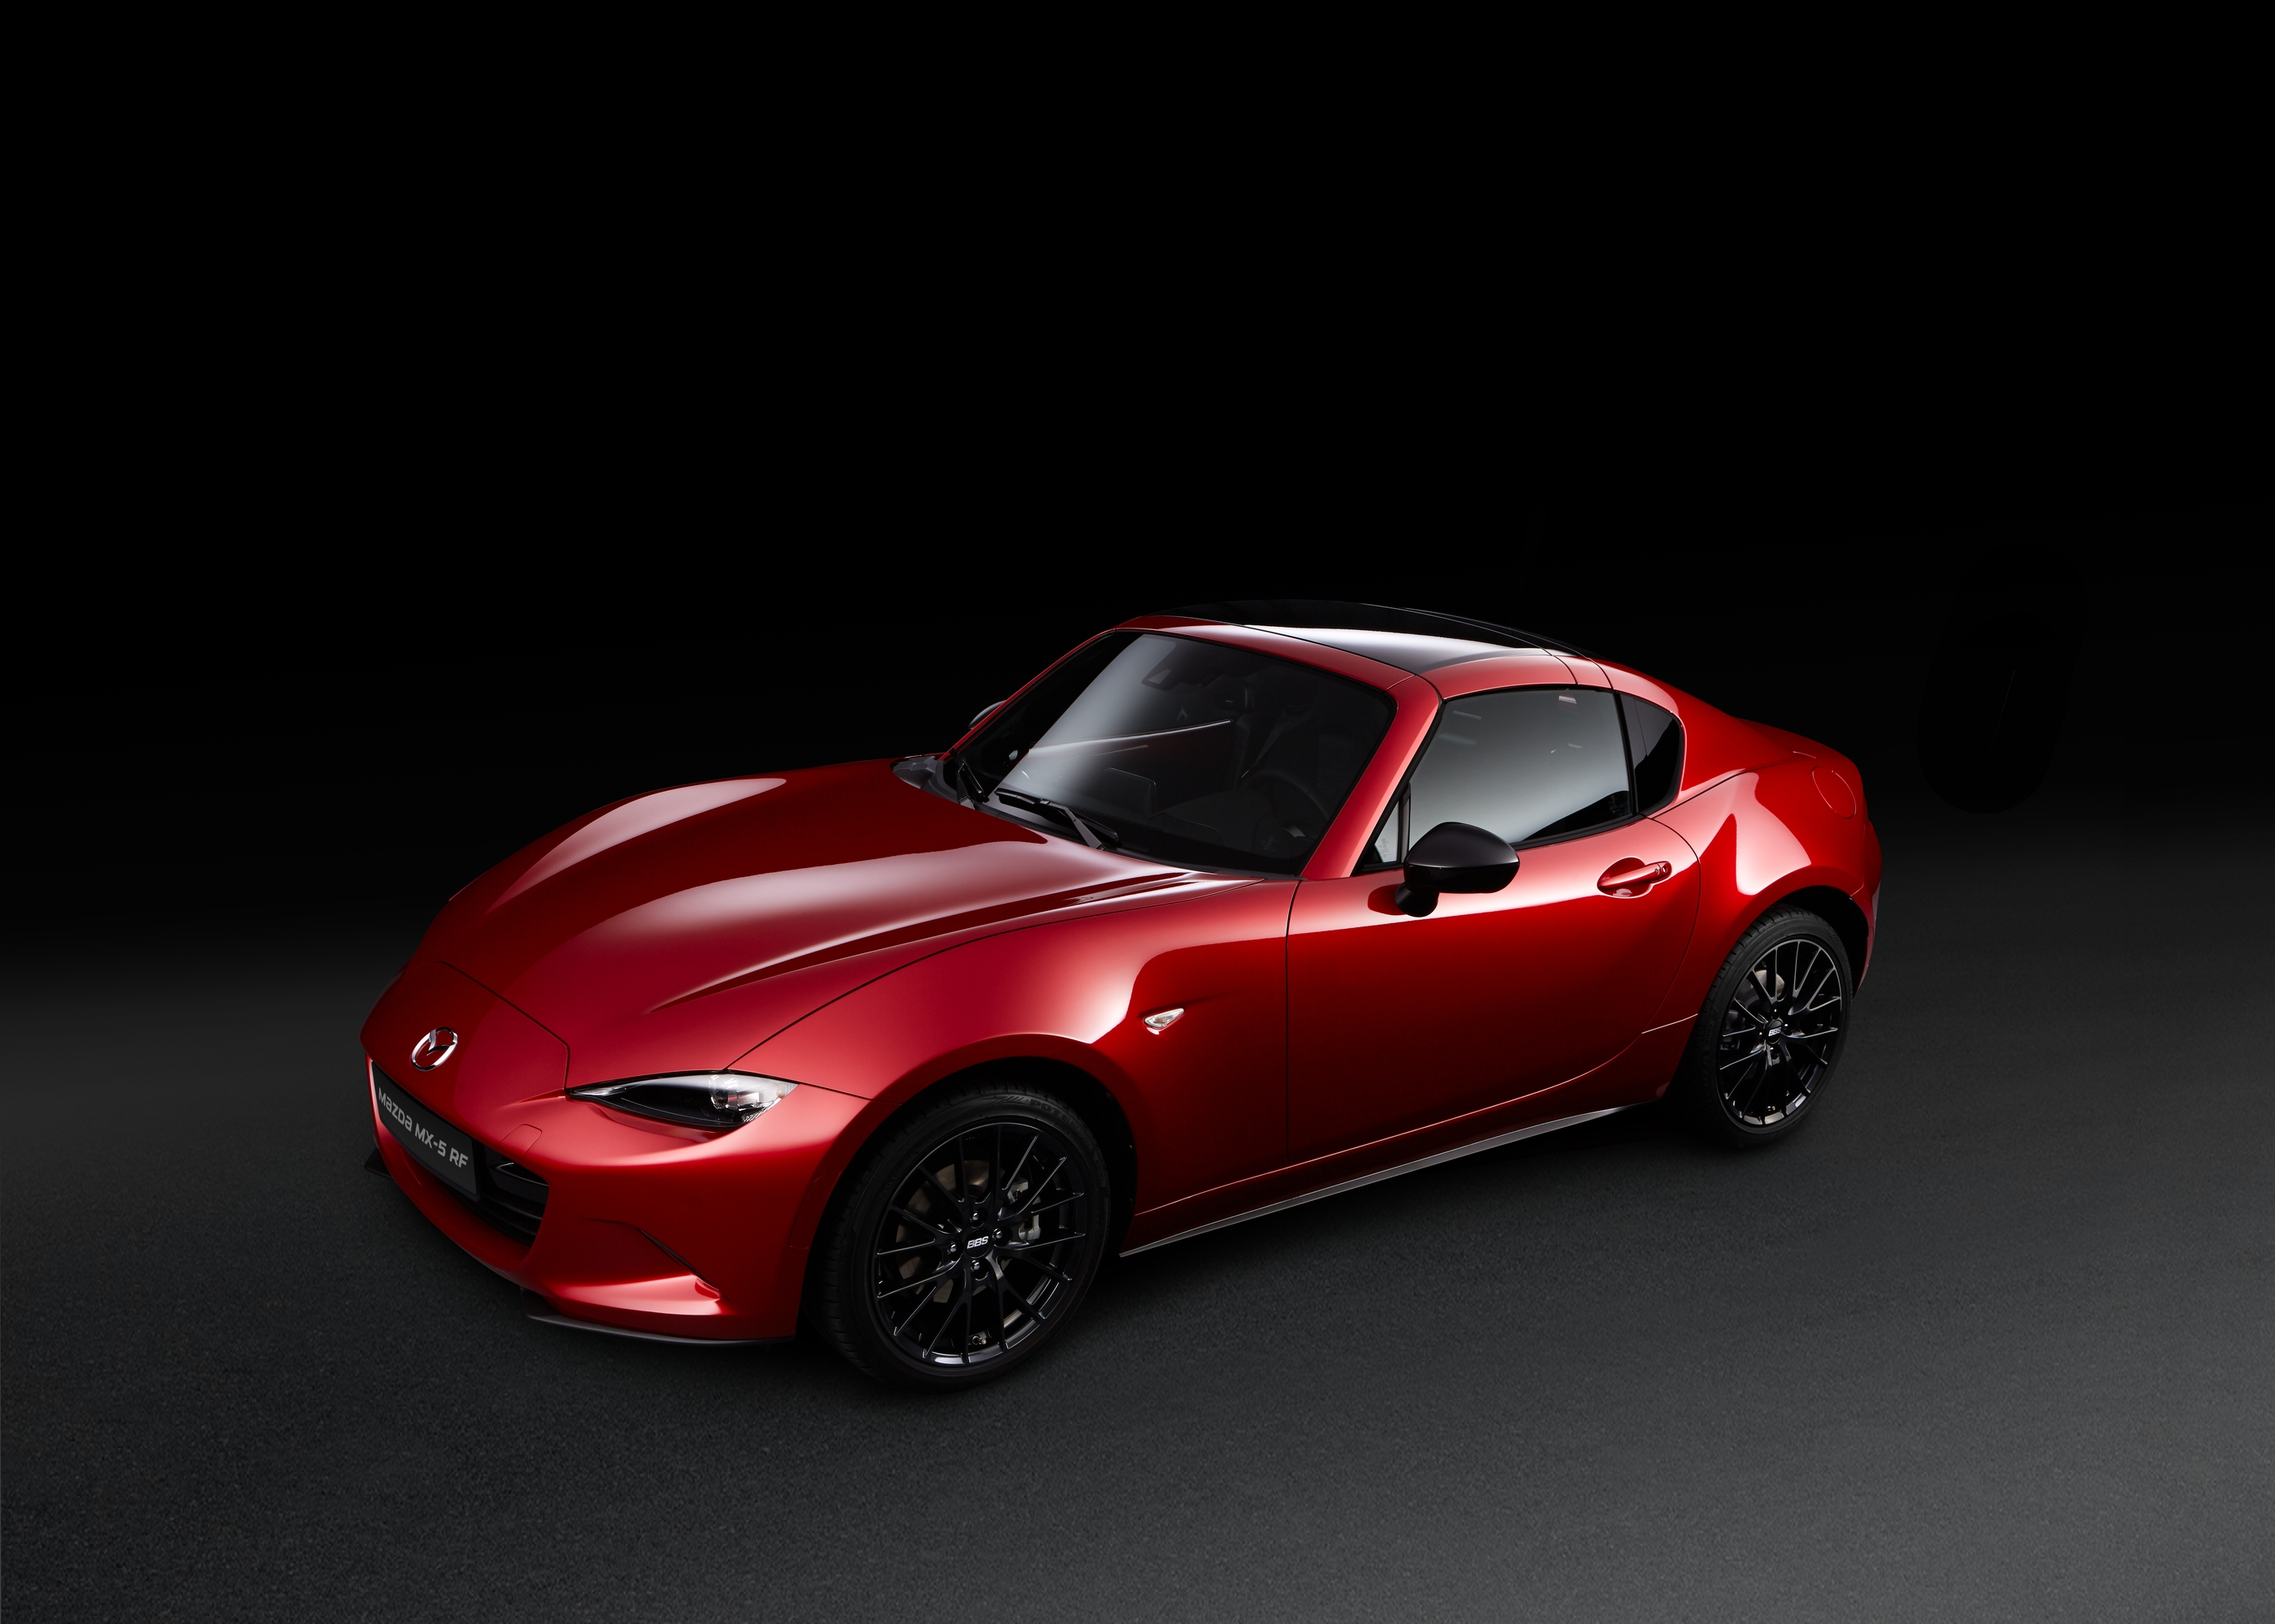 sondermodell mazda mx 5 rf ignition ausschlie lich ber. Black Bedroom Furniture Sets. Home Design Ideas